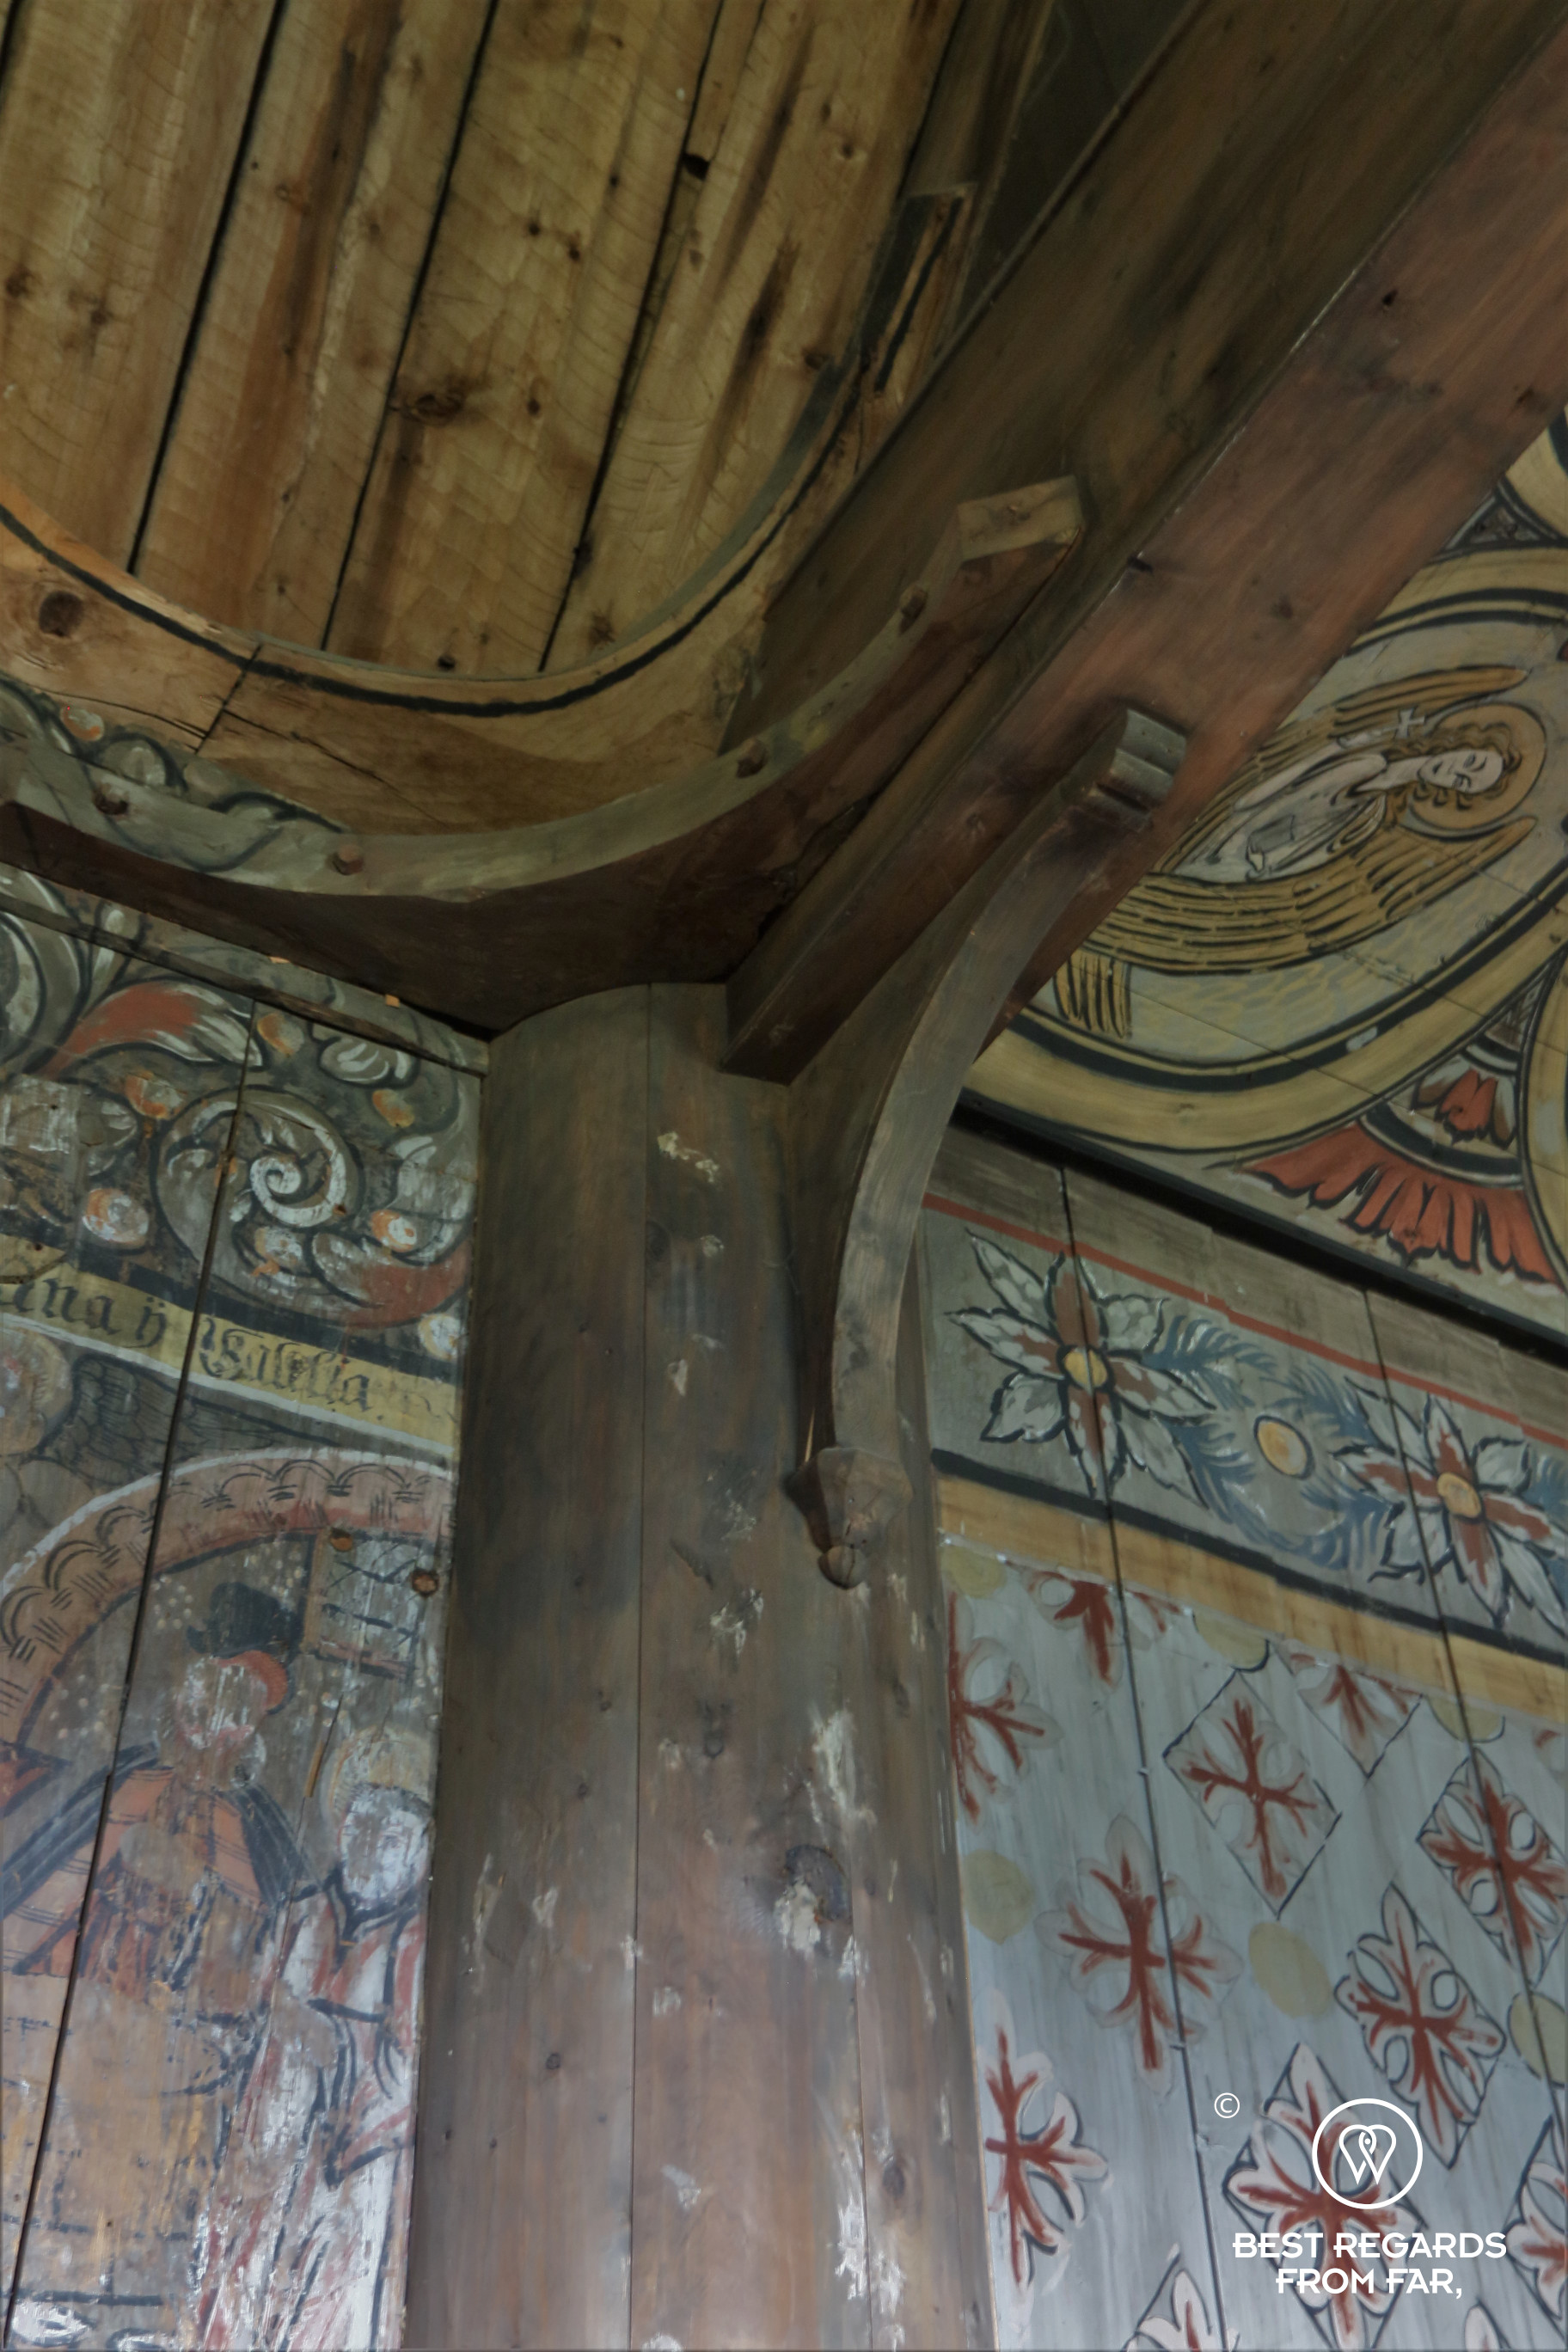 One of the staves inside Eidsborg Stave Church